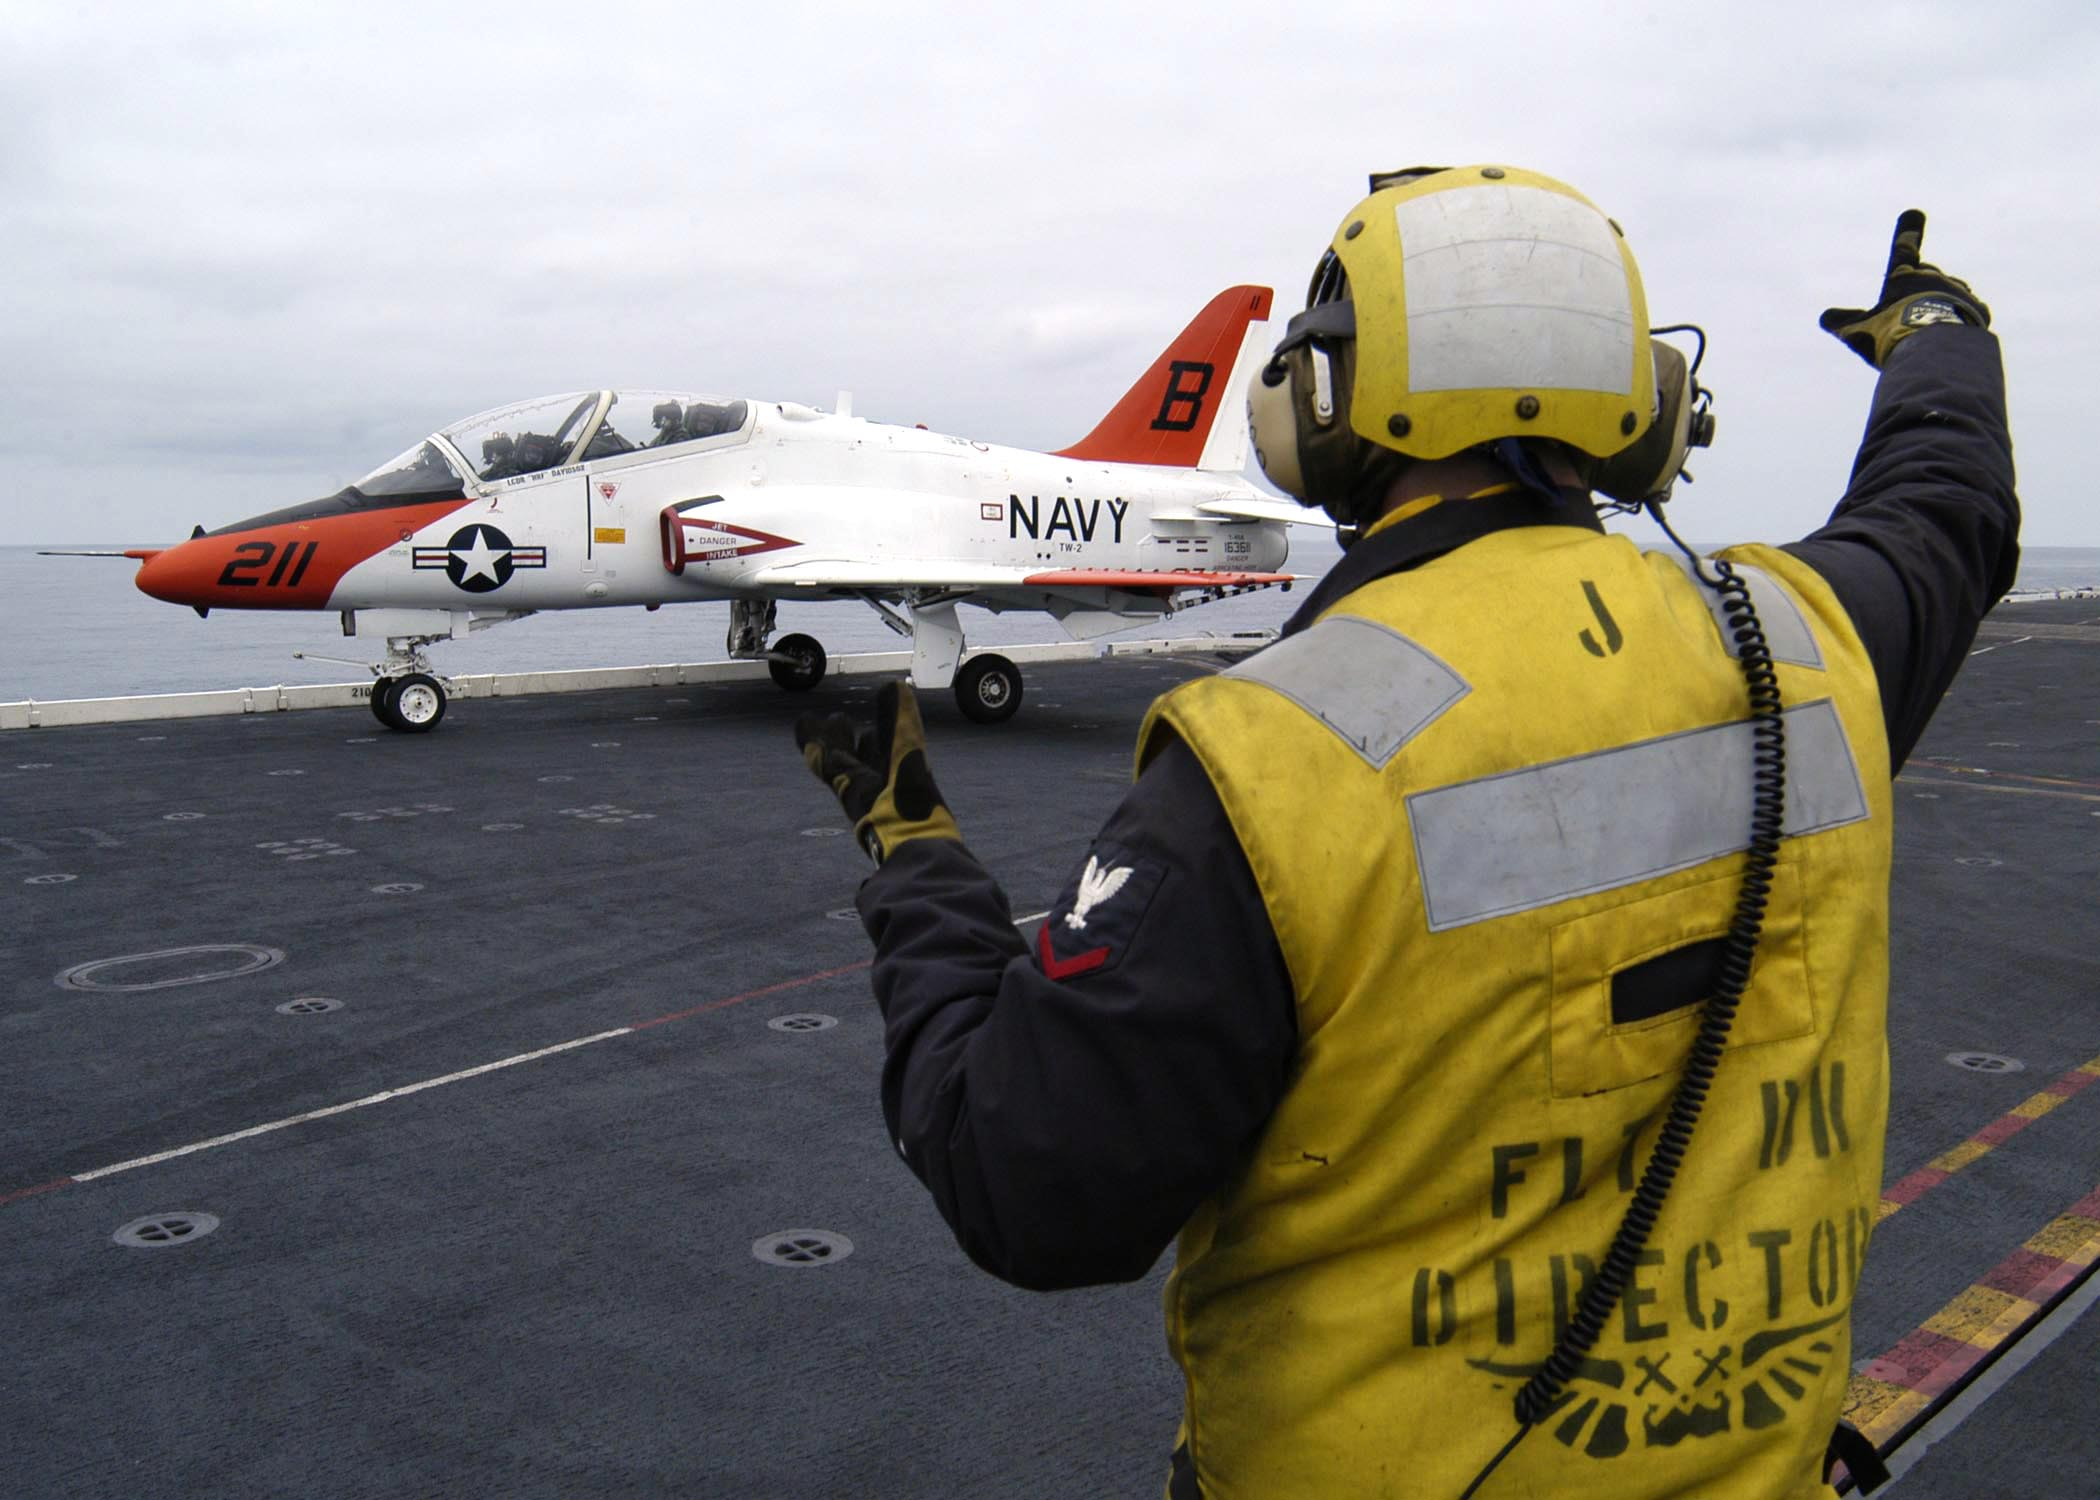 File:US Navy 040623-N-6817C-040 An Aviation Boatswain's ...